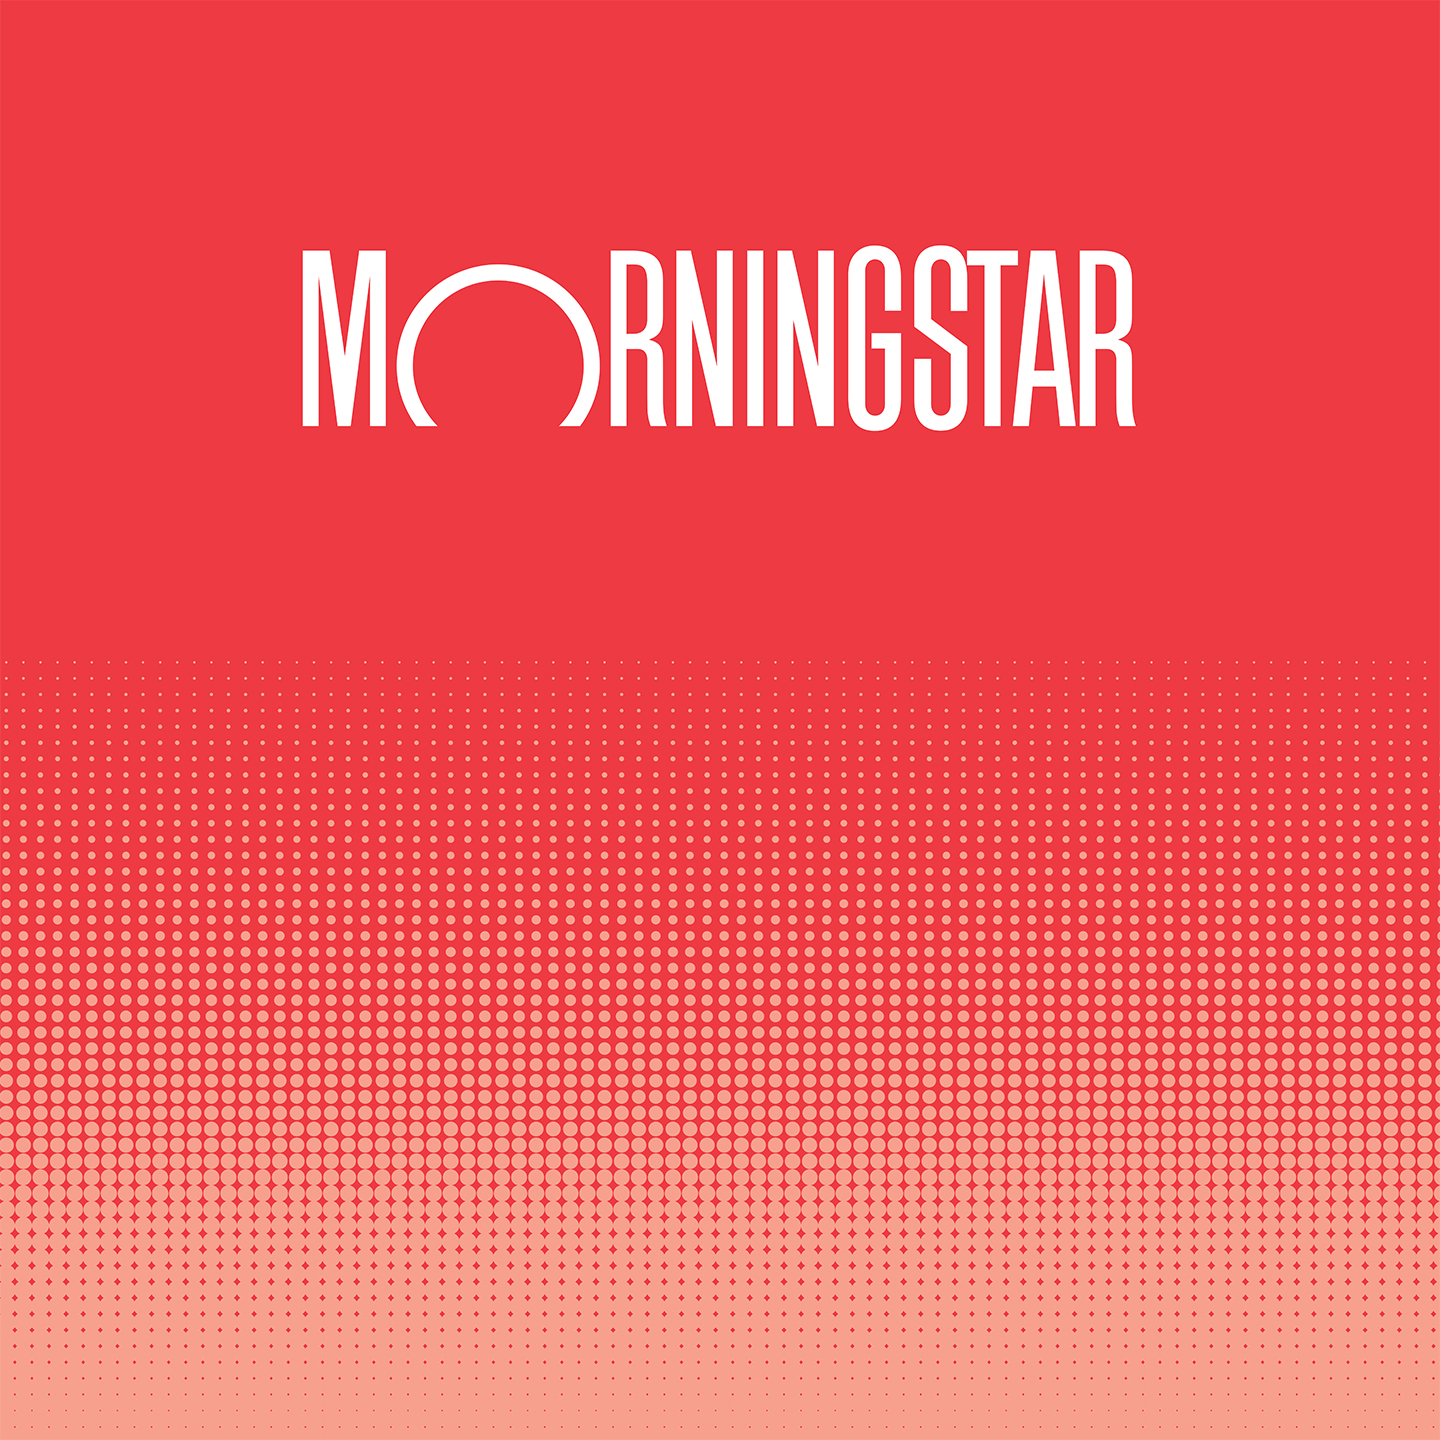 Morningstar UK